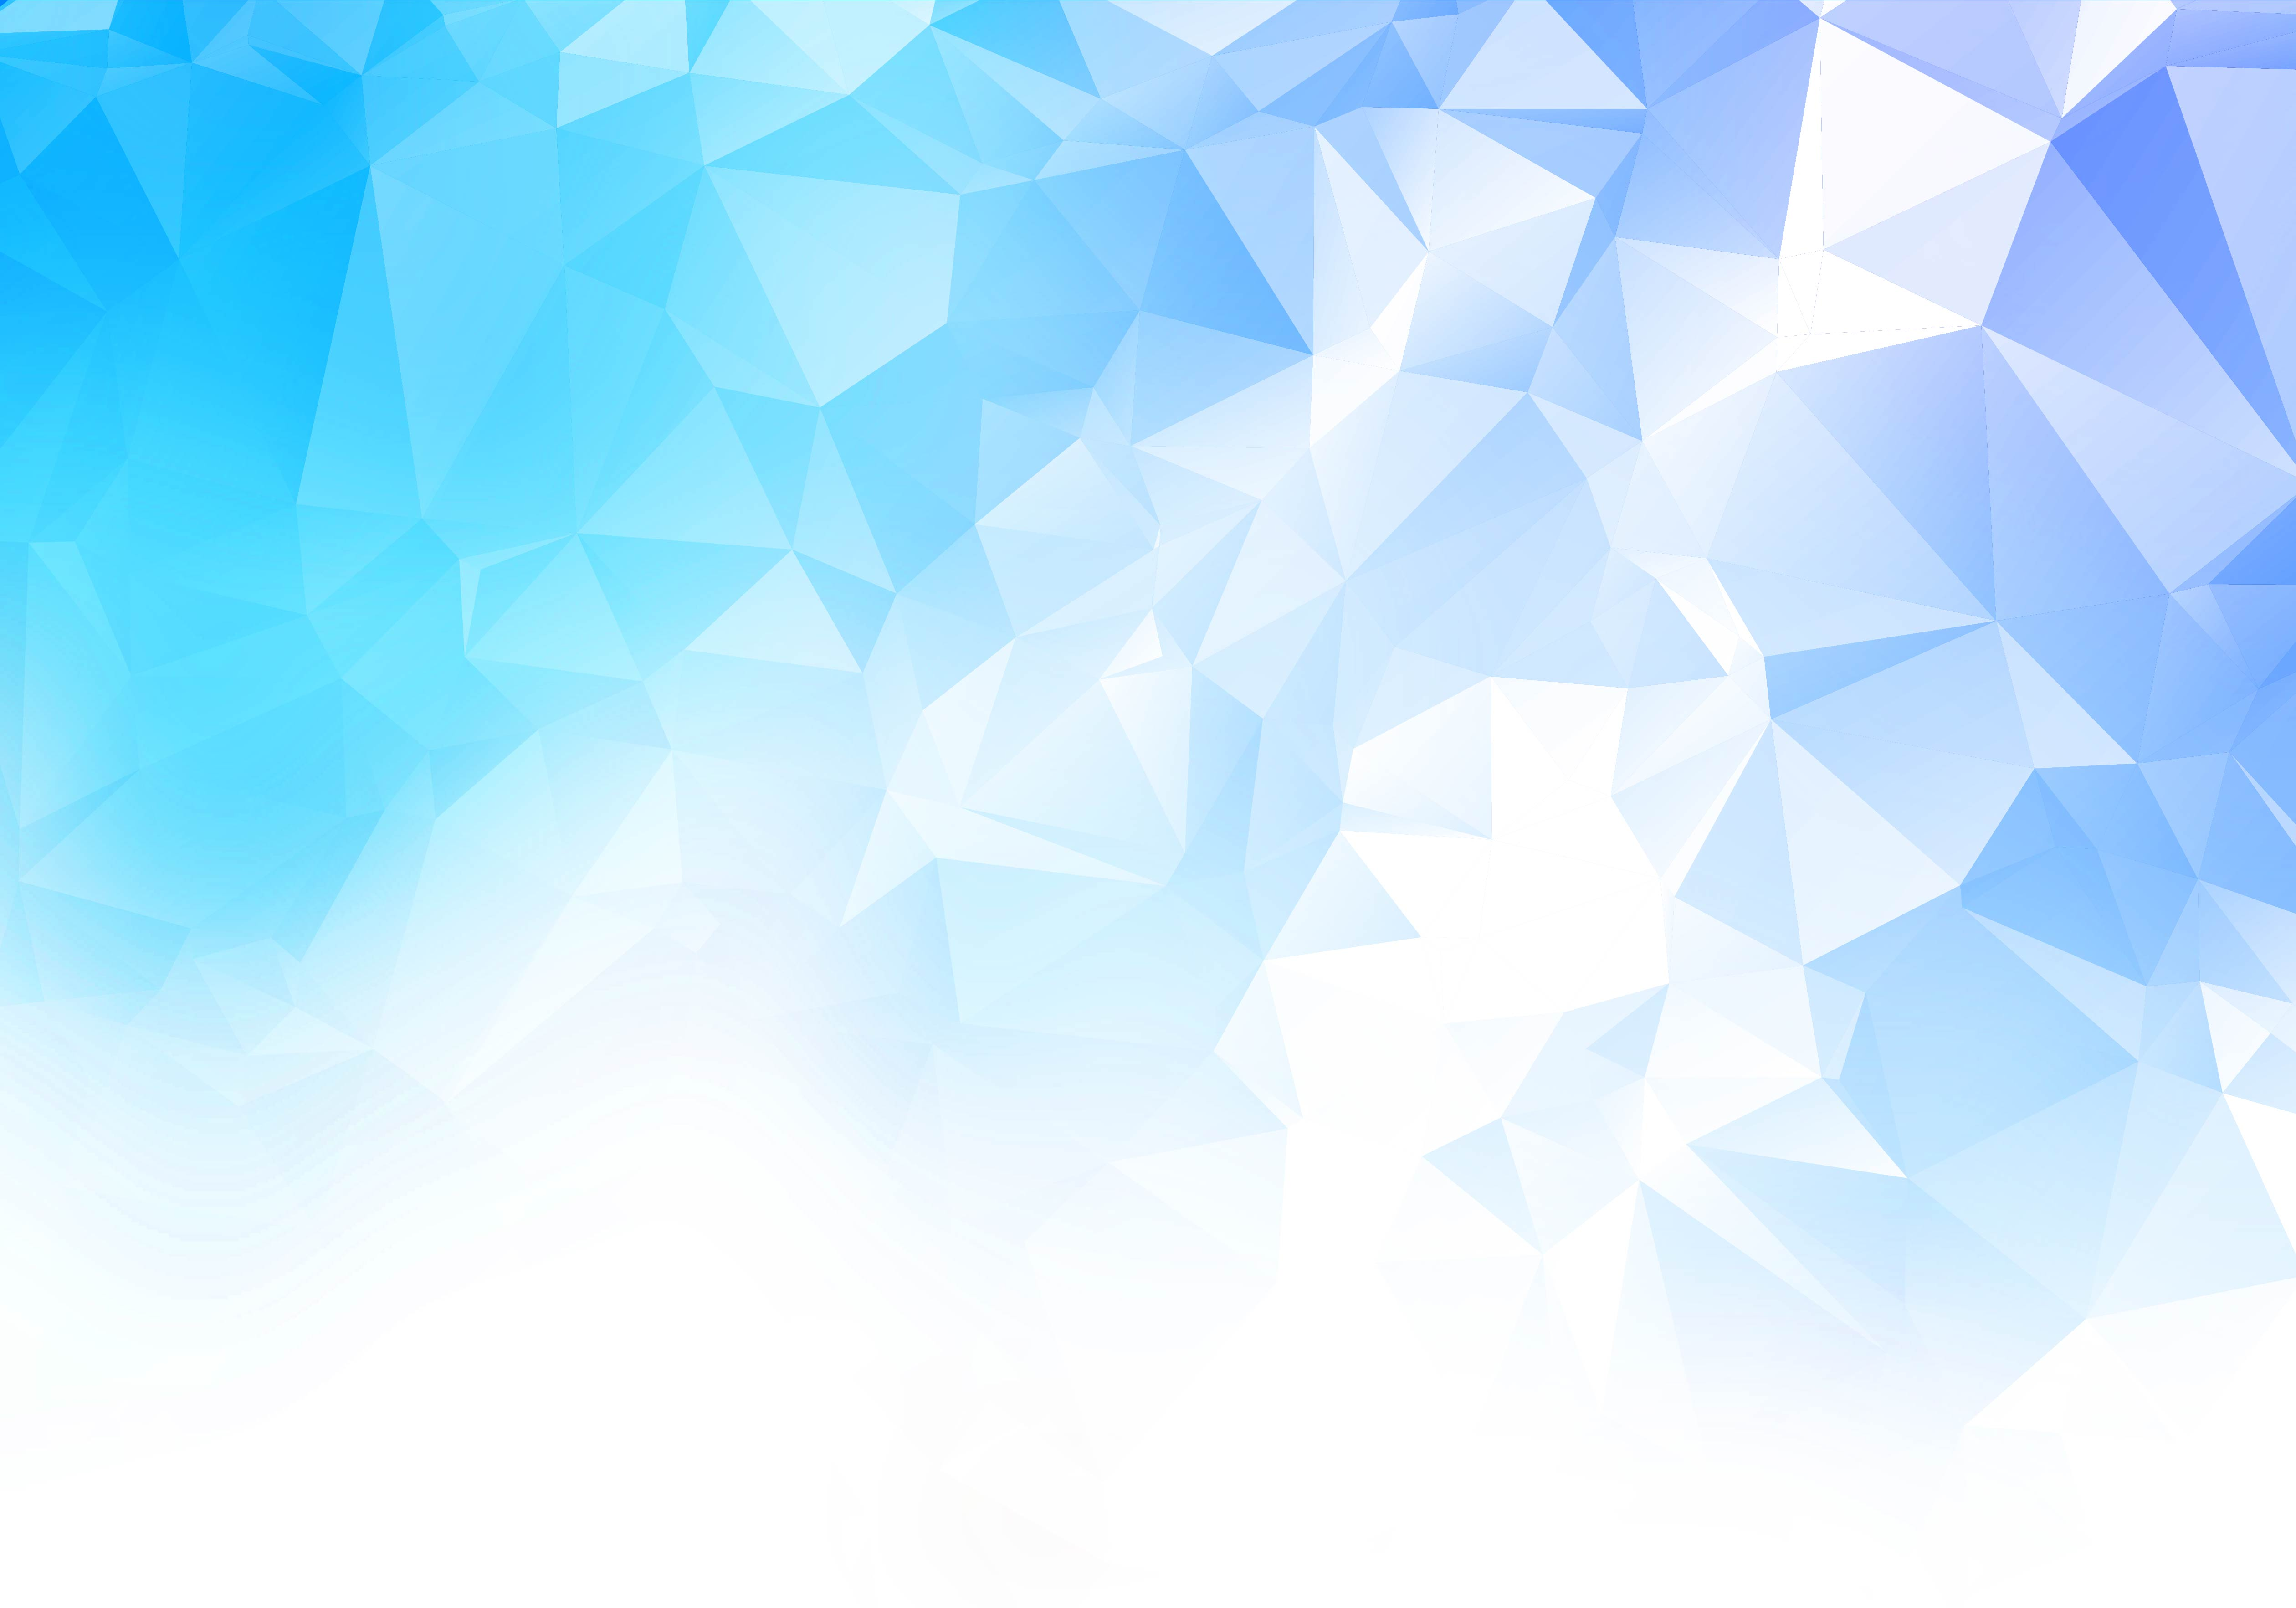 Blue, White Low Poly Triangle Shapes Background vector